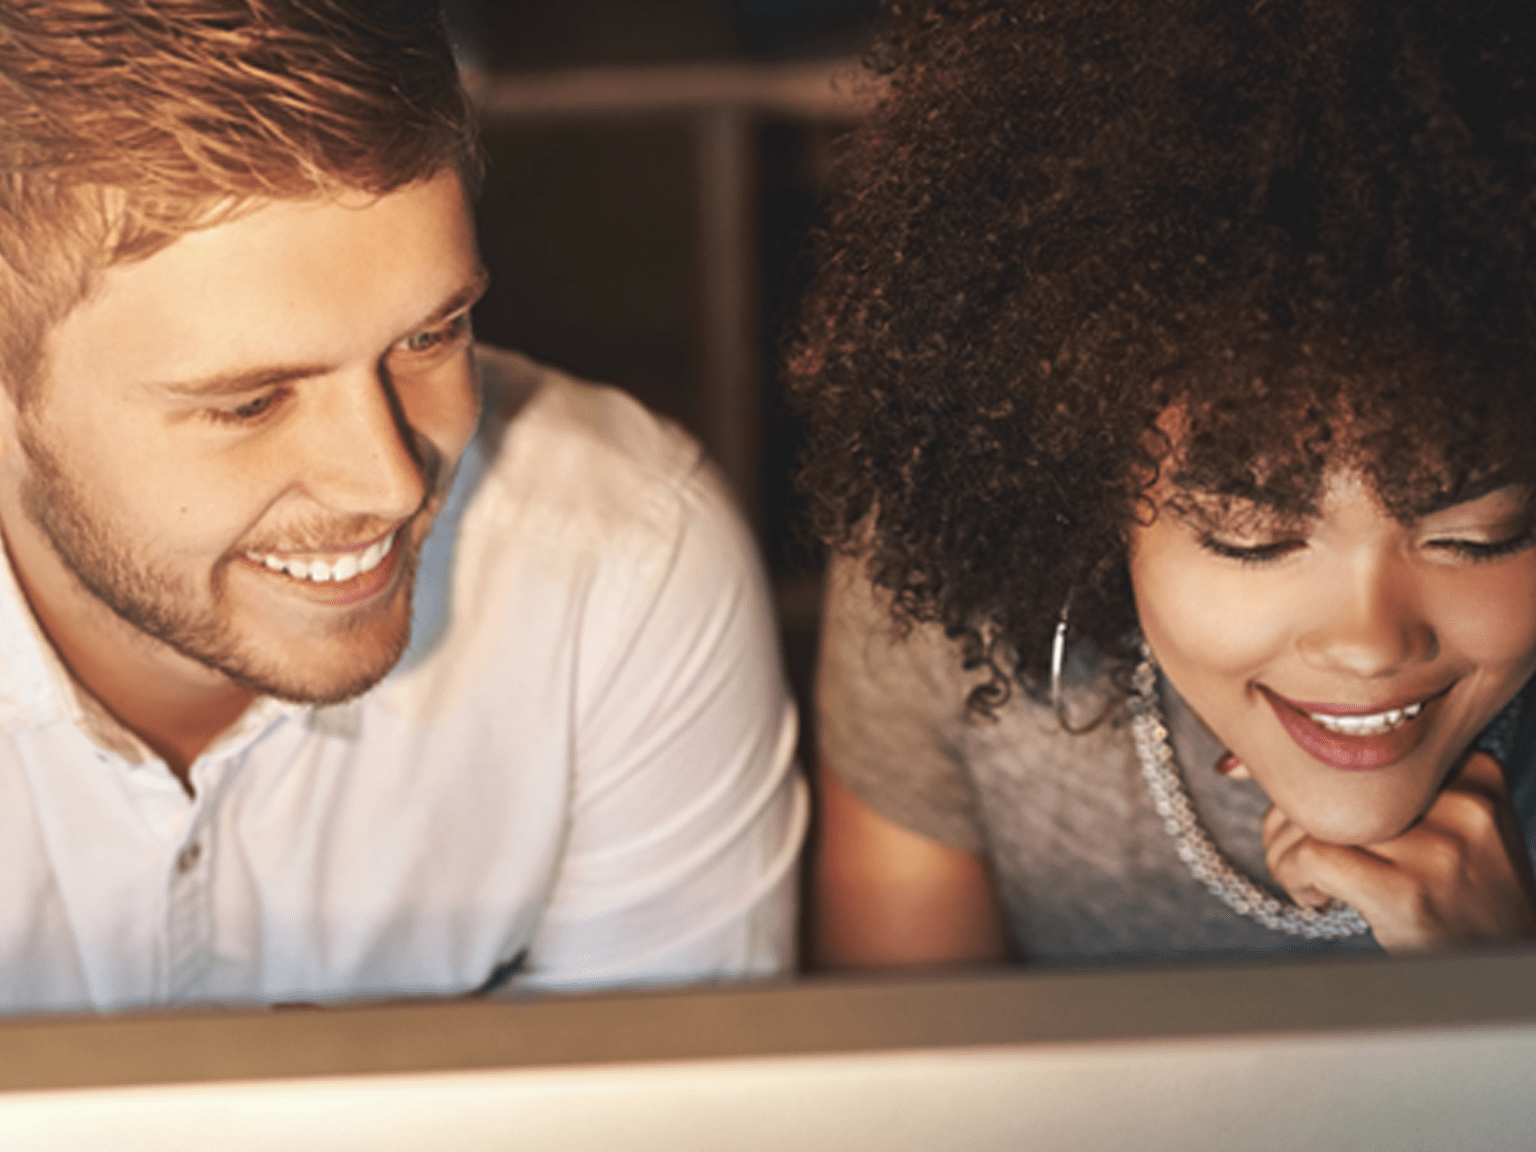 Man and woman smiling while looking at something out of shot